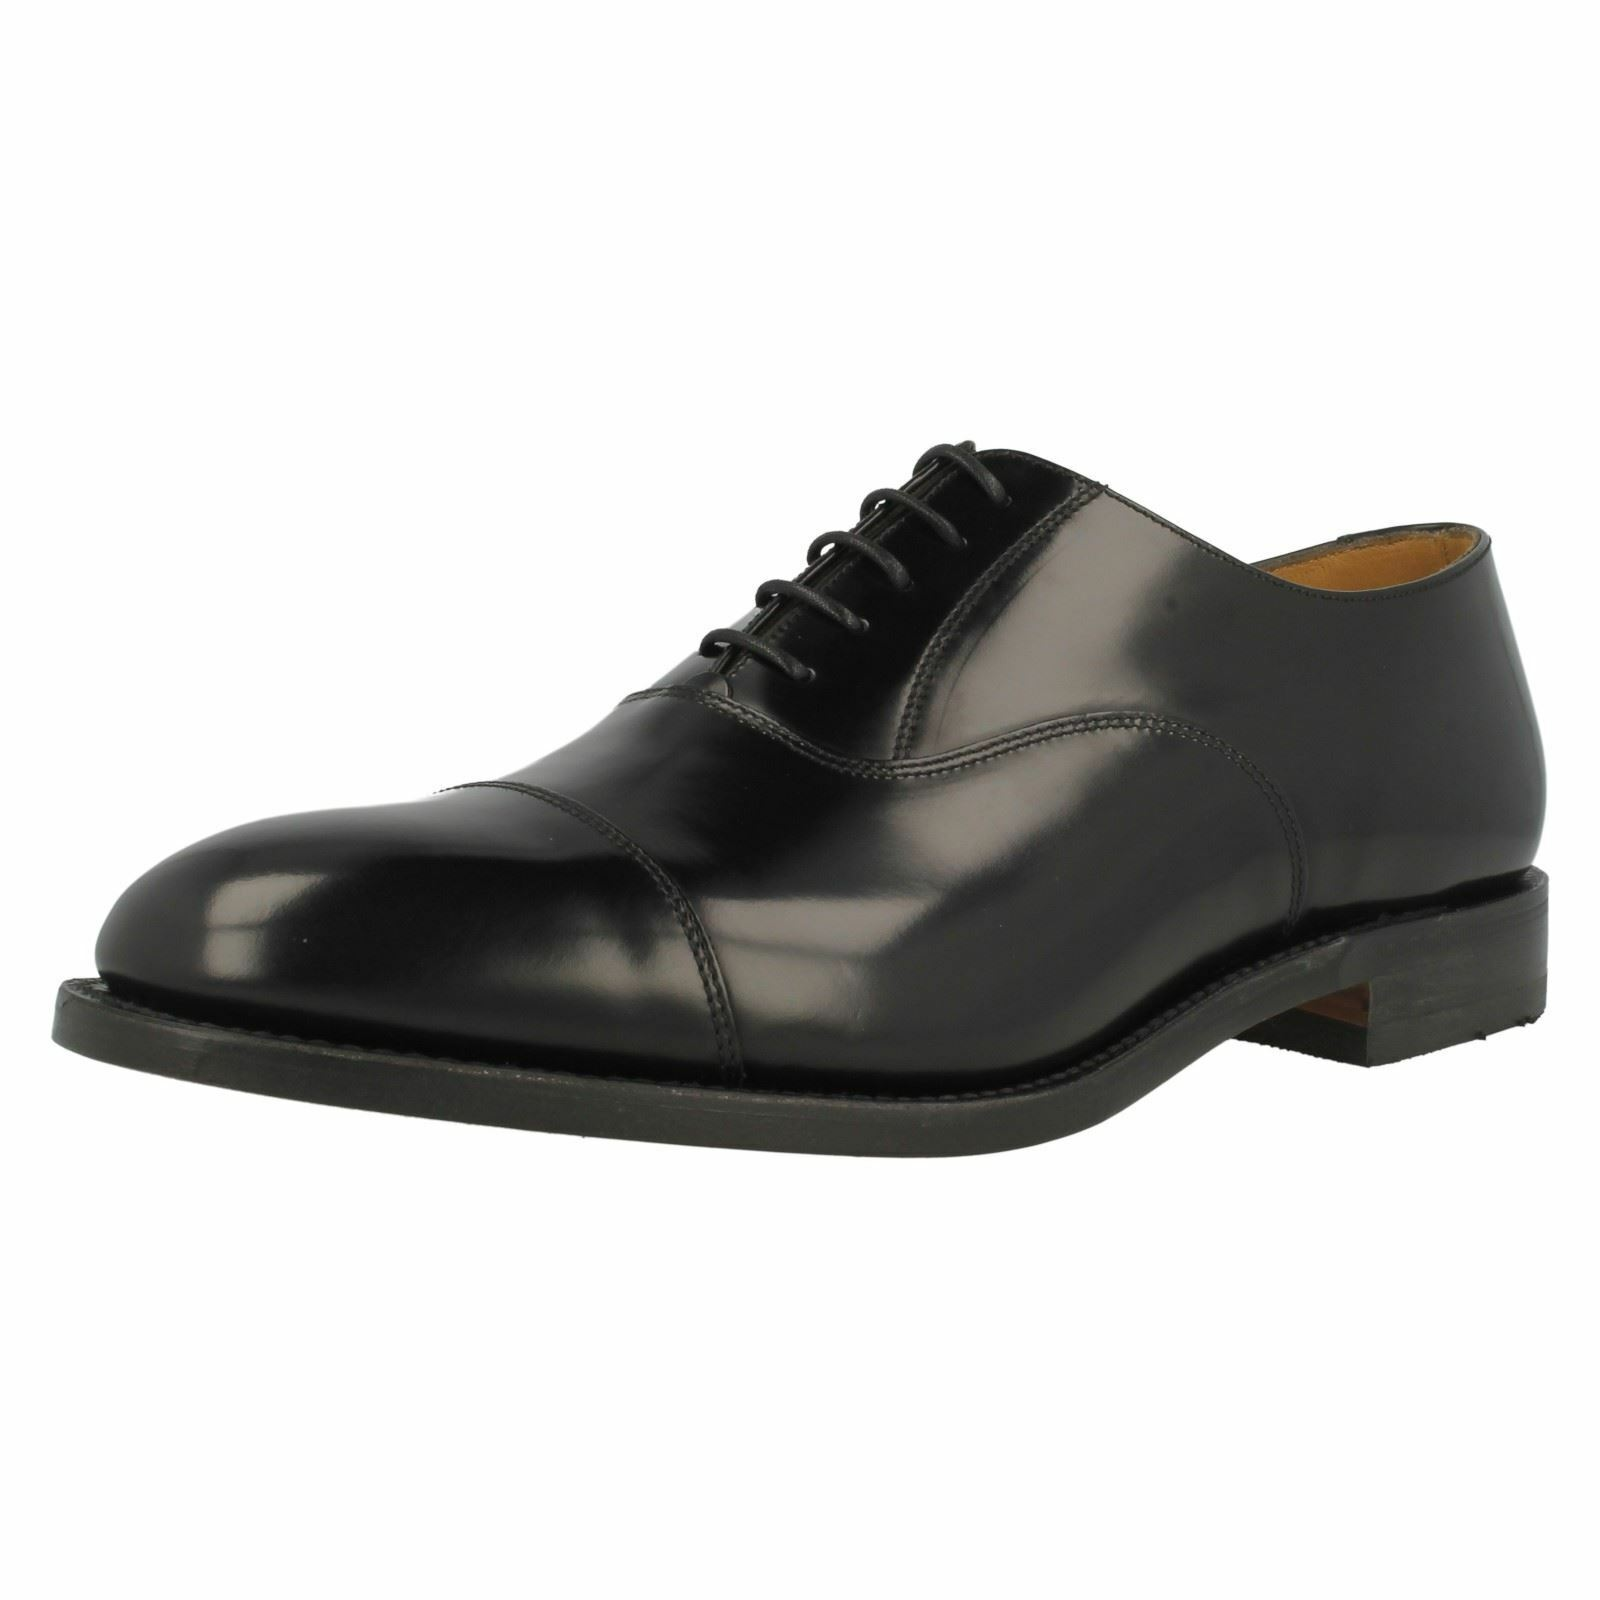 119cb30c90e75c Mens Up shoes  747B  Loake Lace ntyudk6379-Formal Shoes - www ...